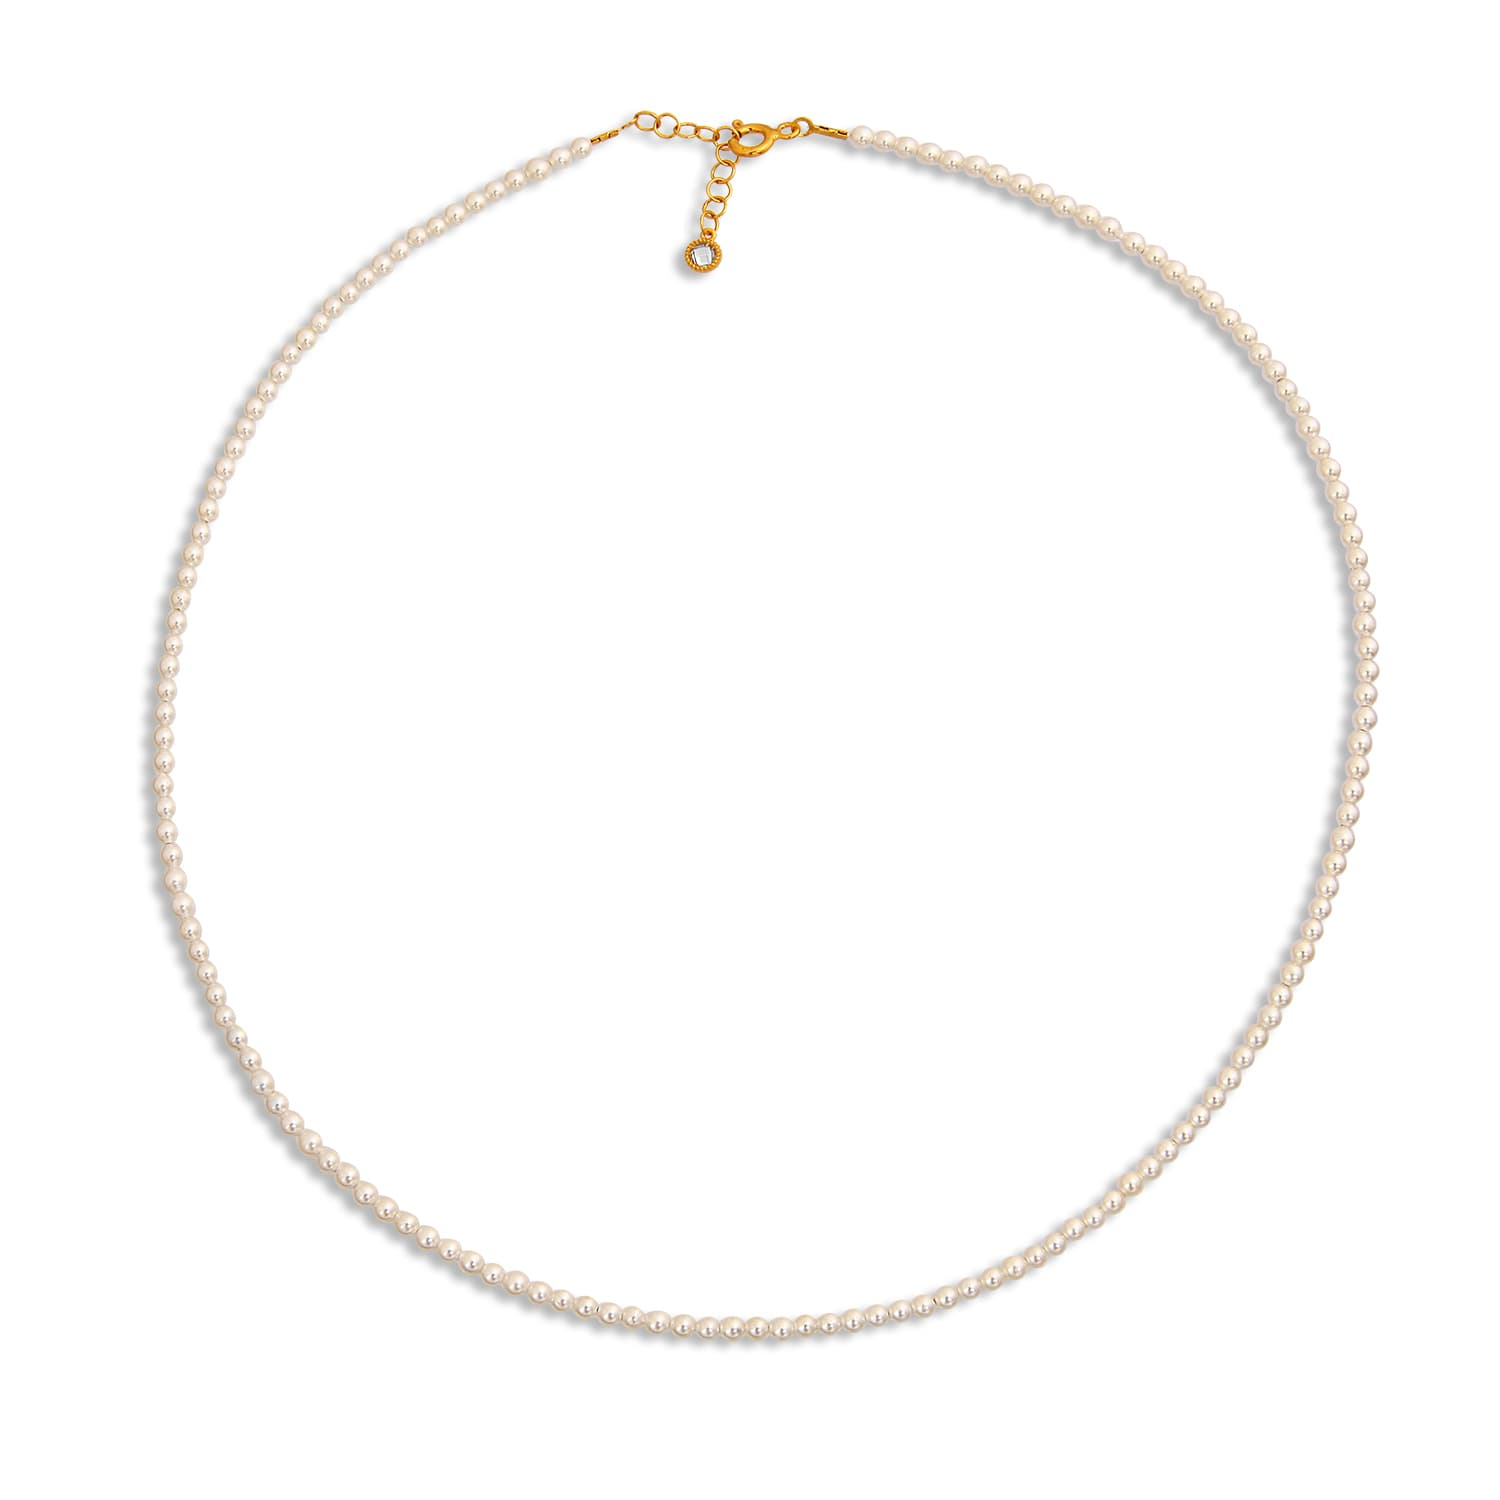 PEARL STRIP NECKLACE